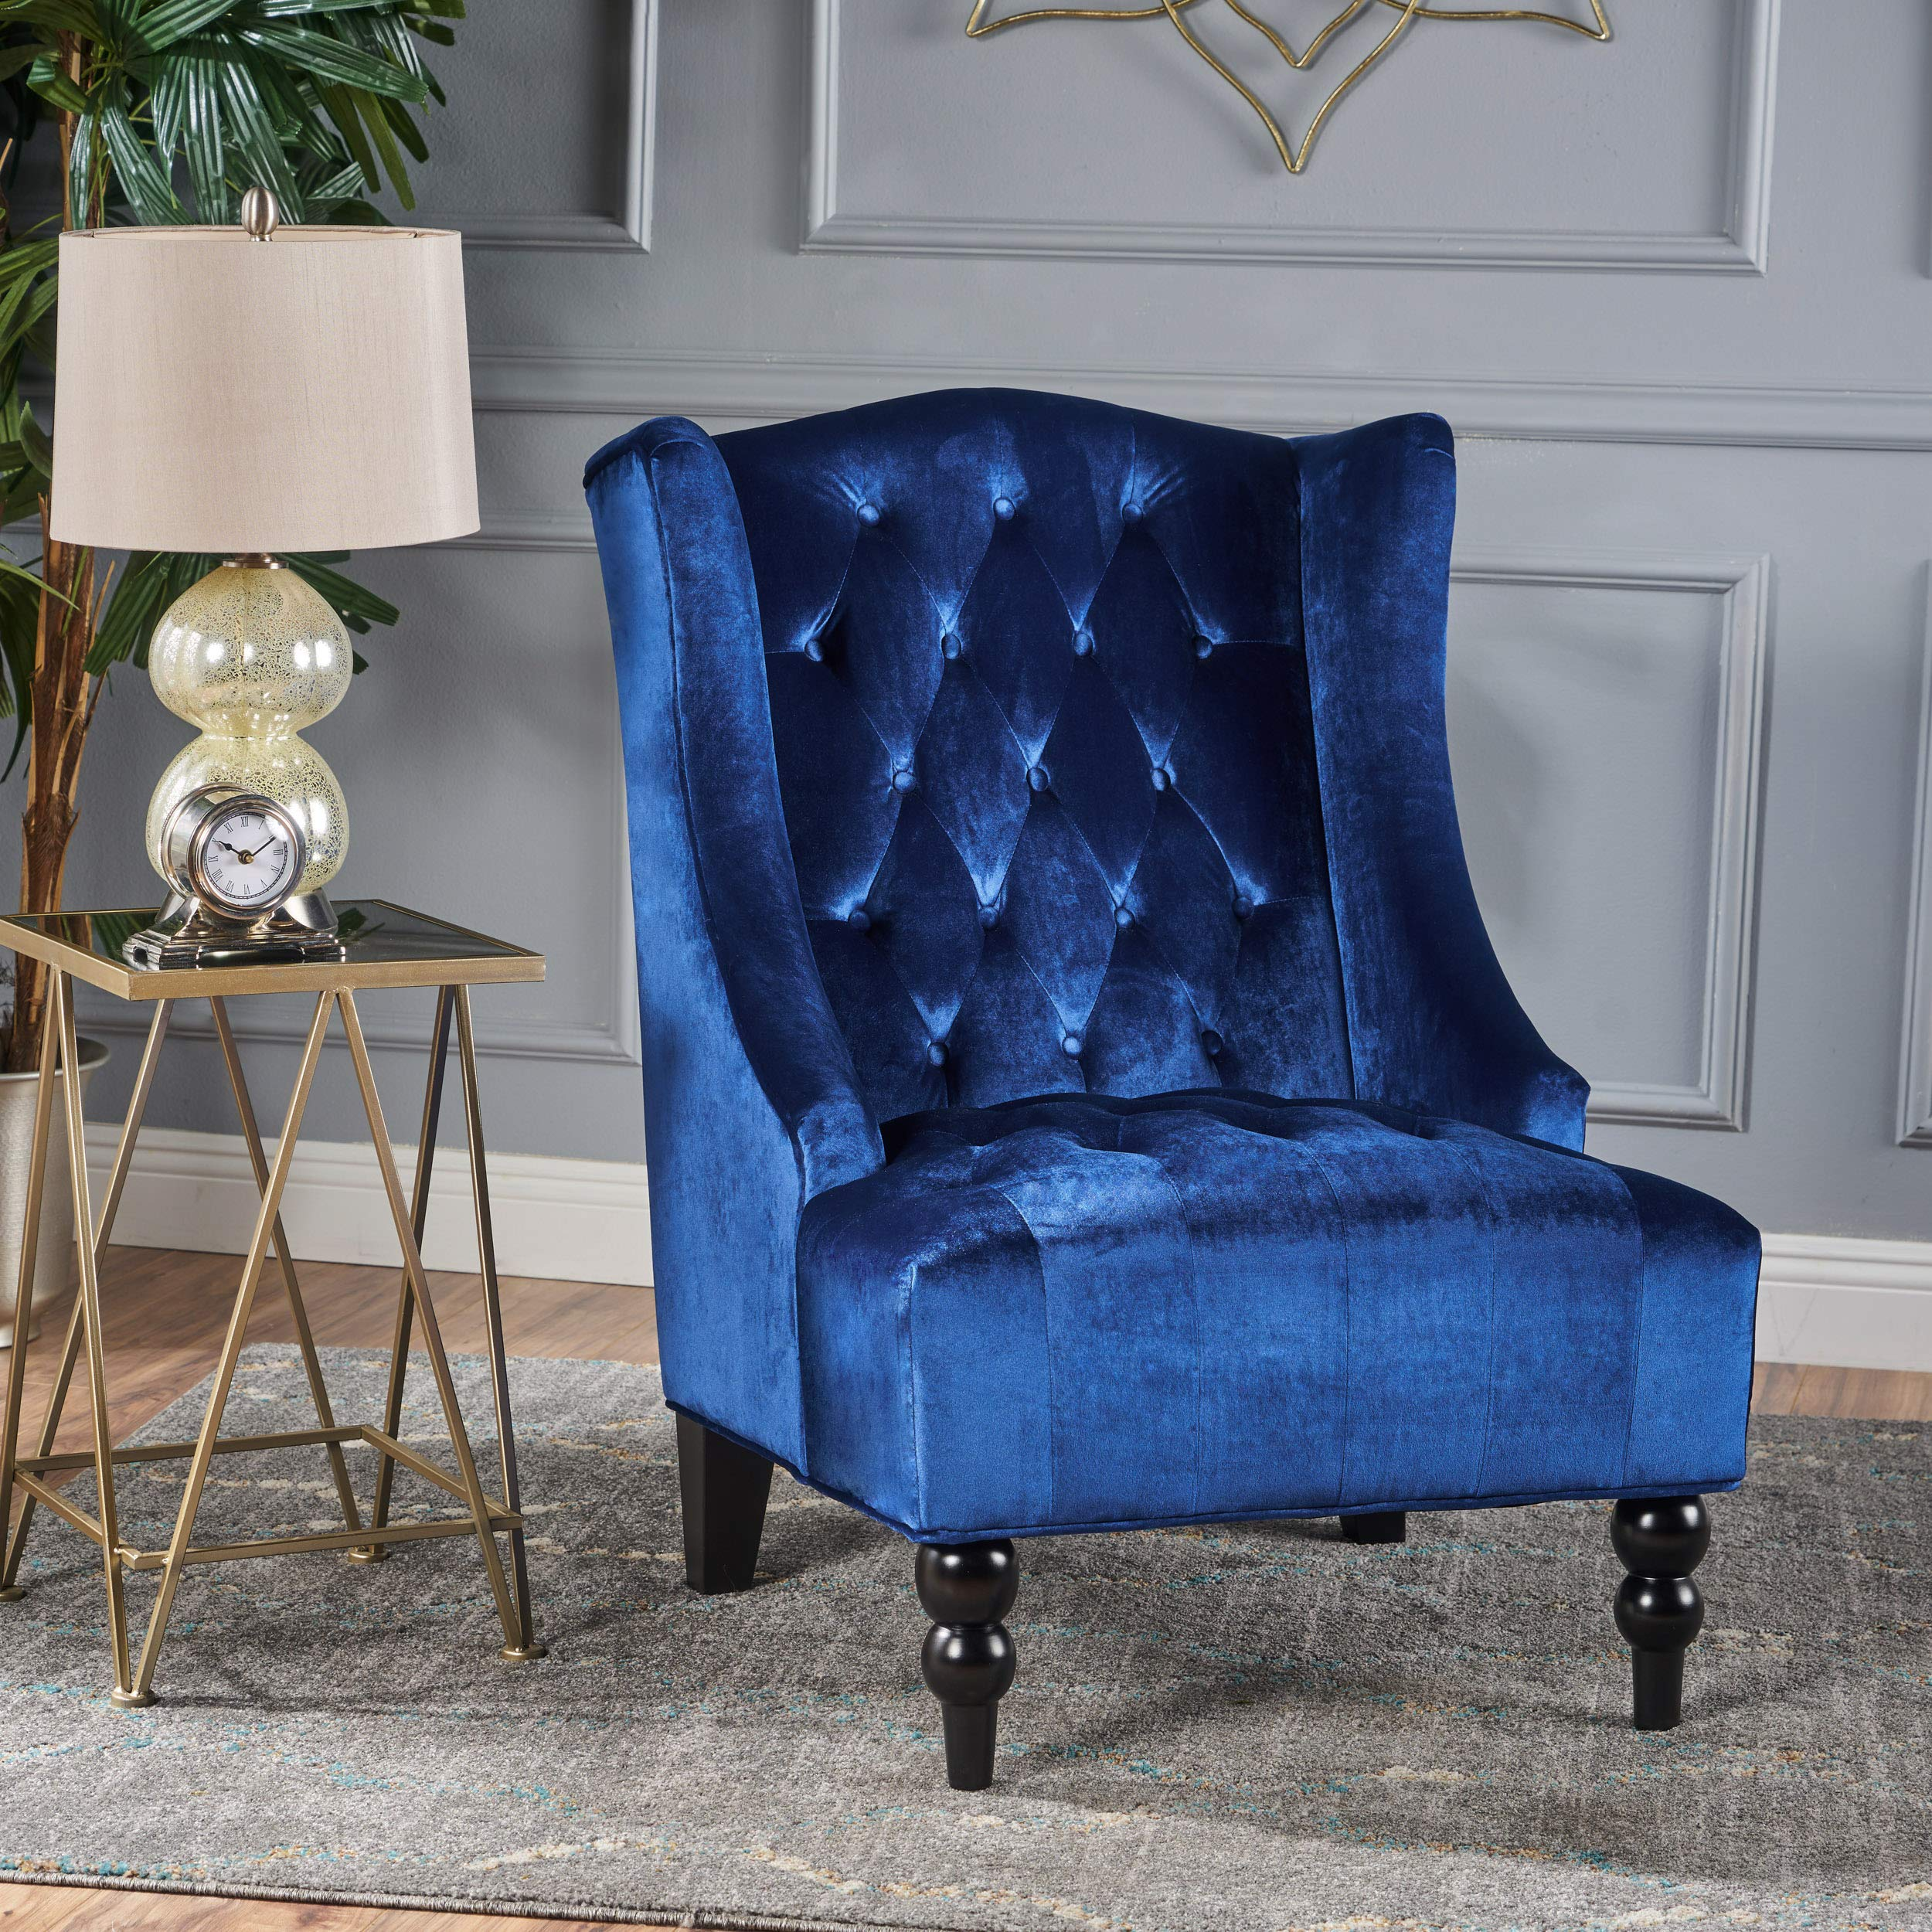 Astonishing Details About High Back Blue Velvet Armchair Wingback Low Seat Tufted Lounge Bedroom Hall New Gmtry Best Dining Table And Chair Ideas Images Gmtryco